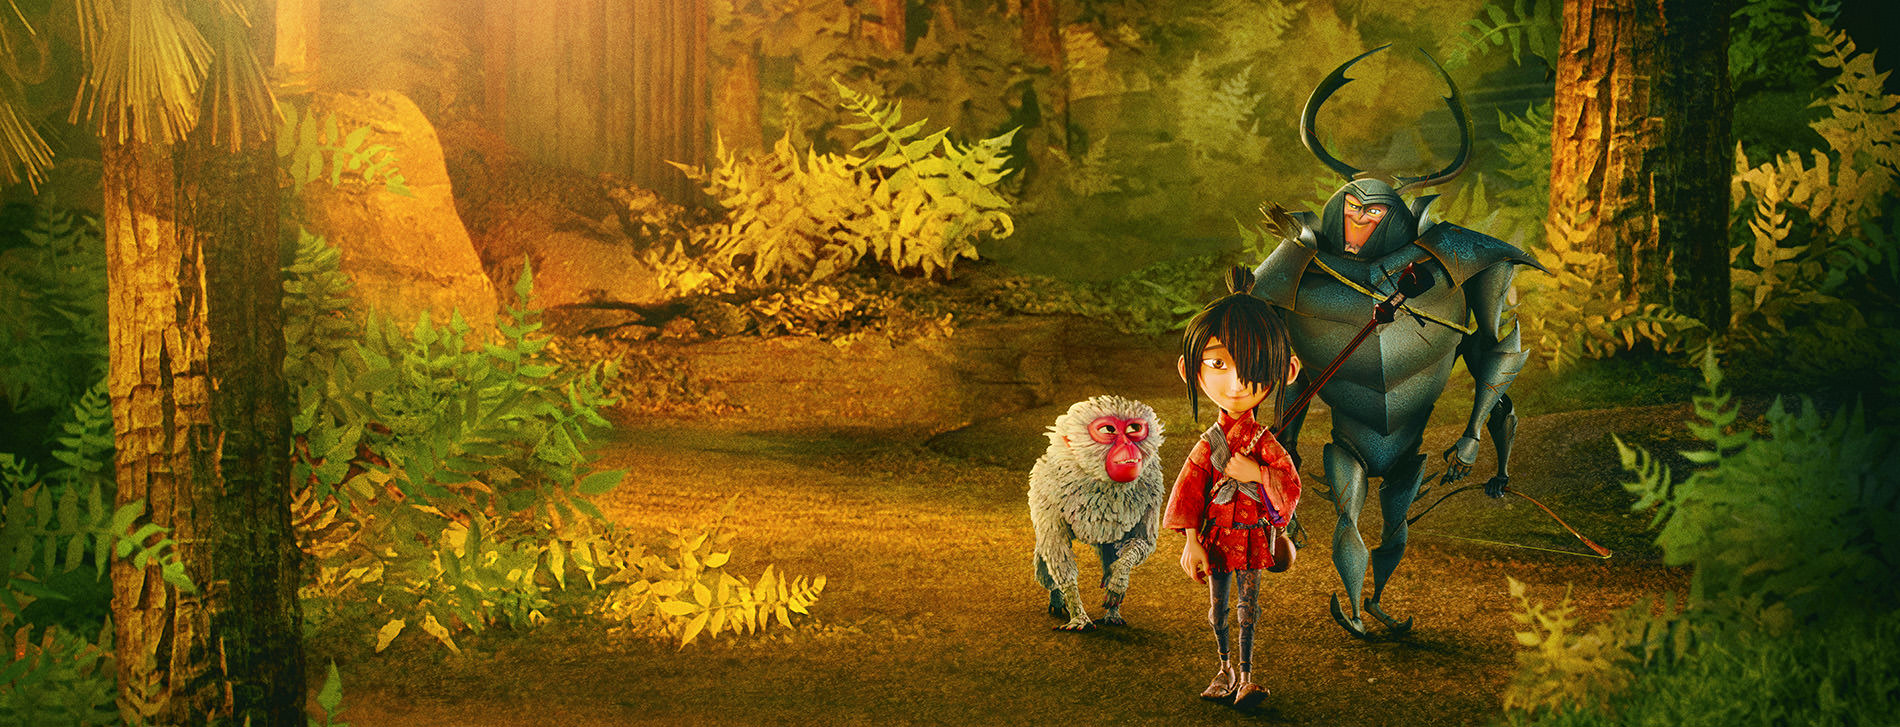 kubo-and-the-two-strings-03